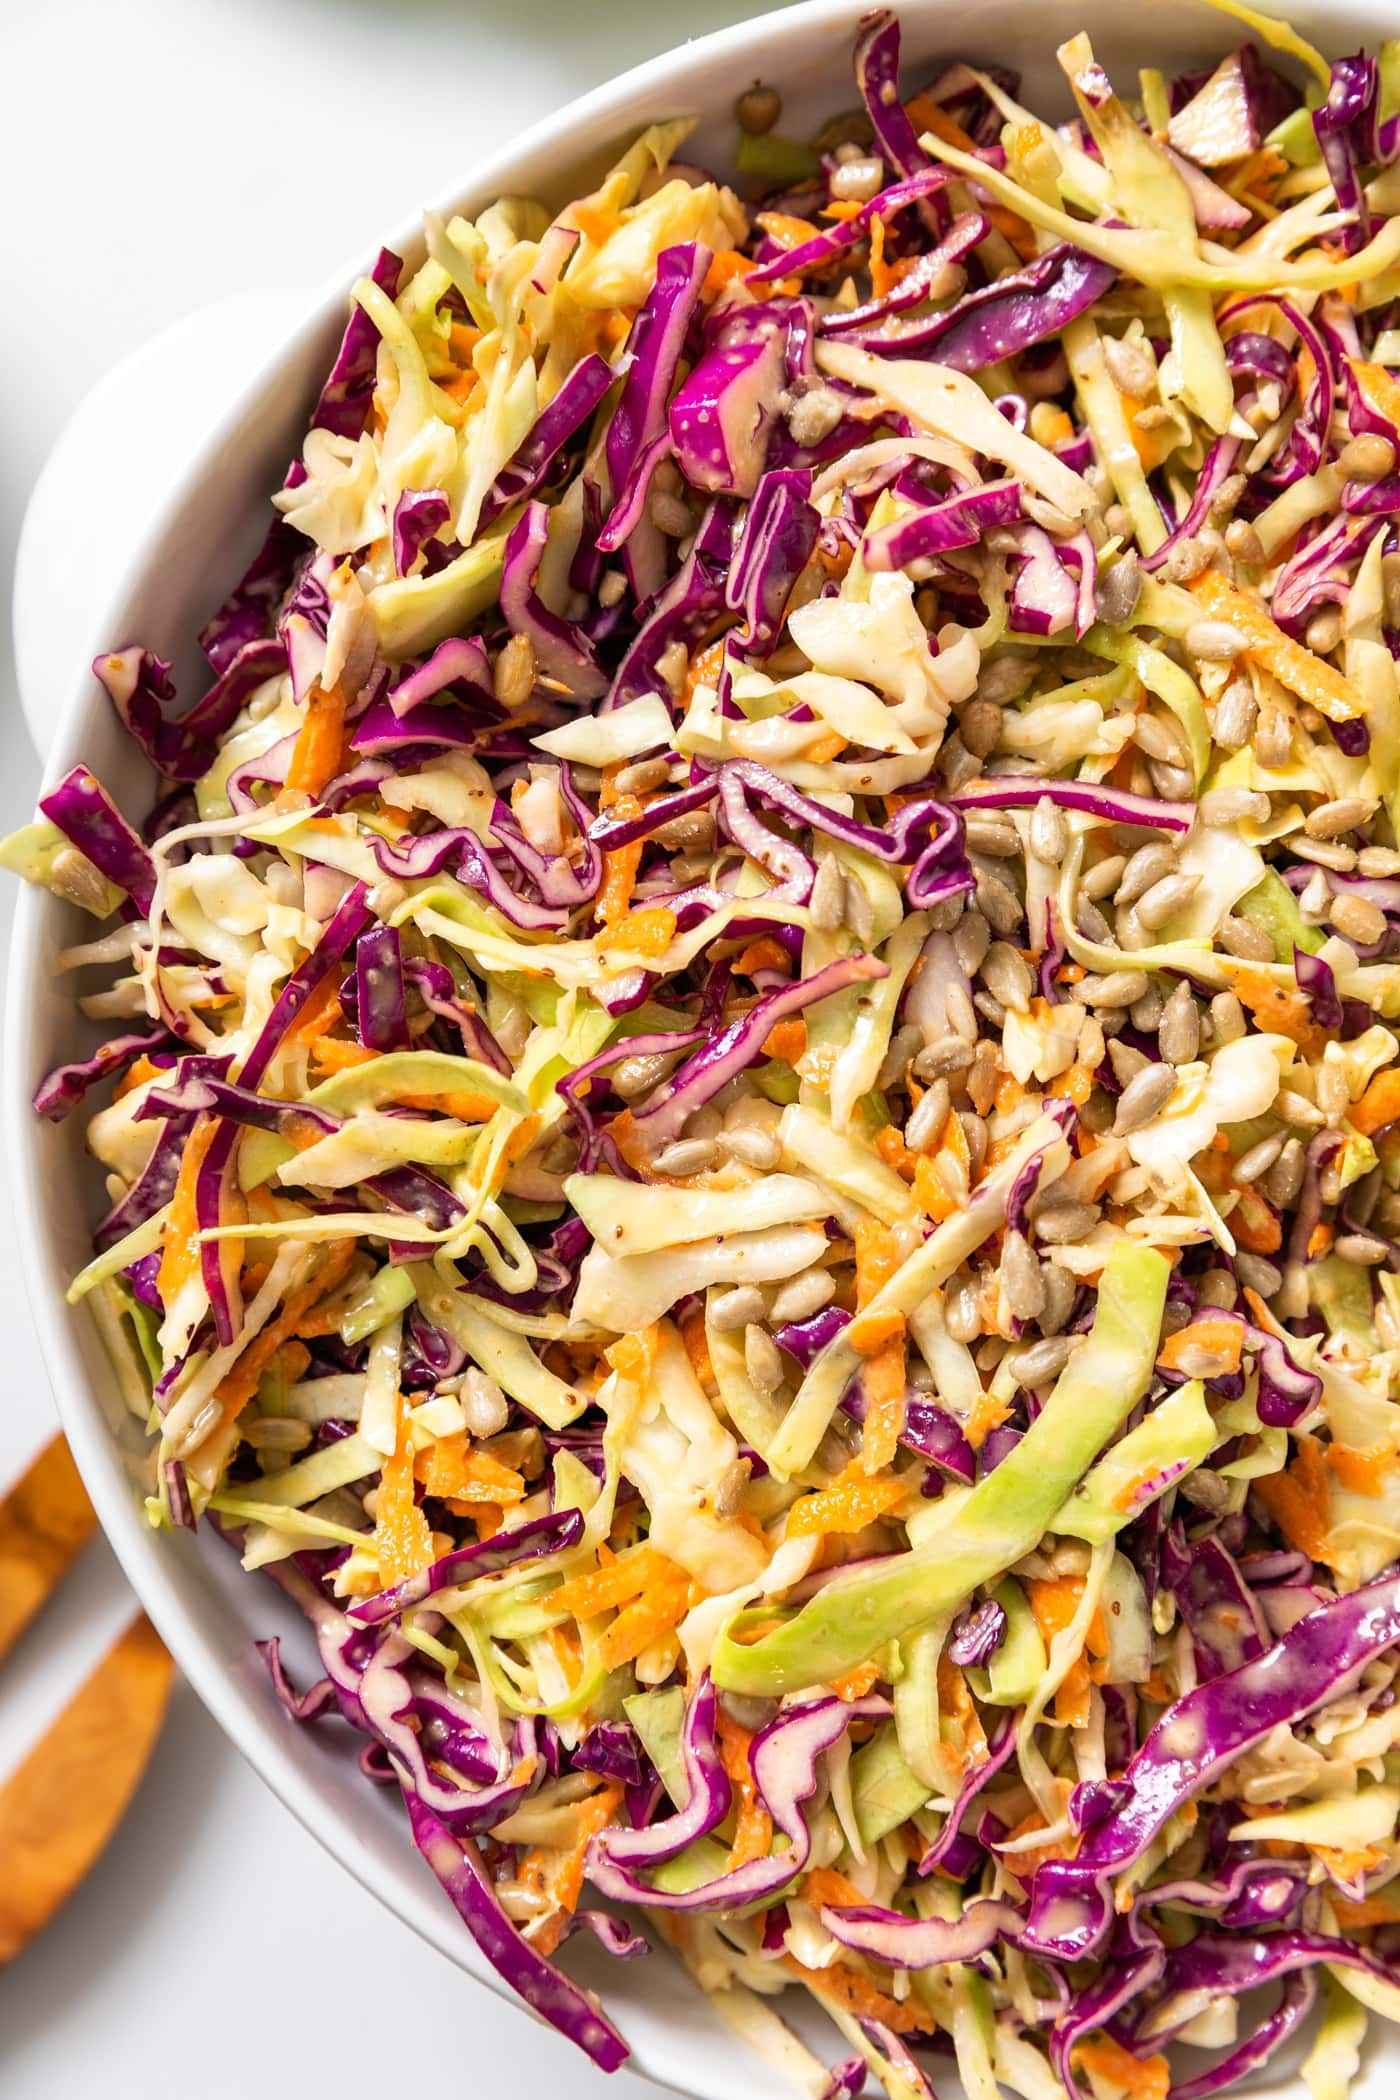 Top down view of white bowl with green and purple cabbage mixed with carrots sitting on white countertop